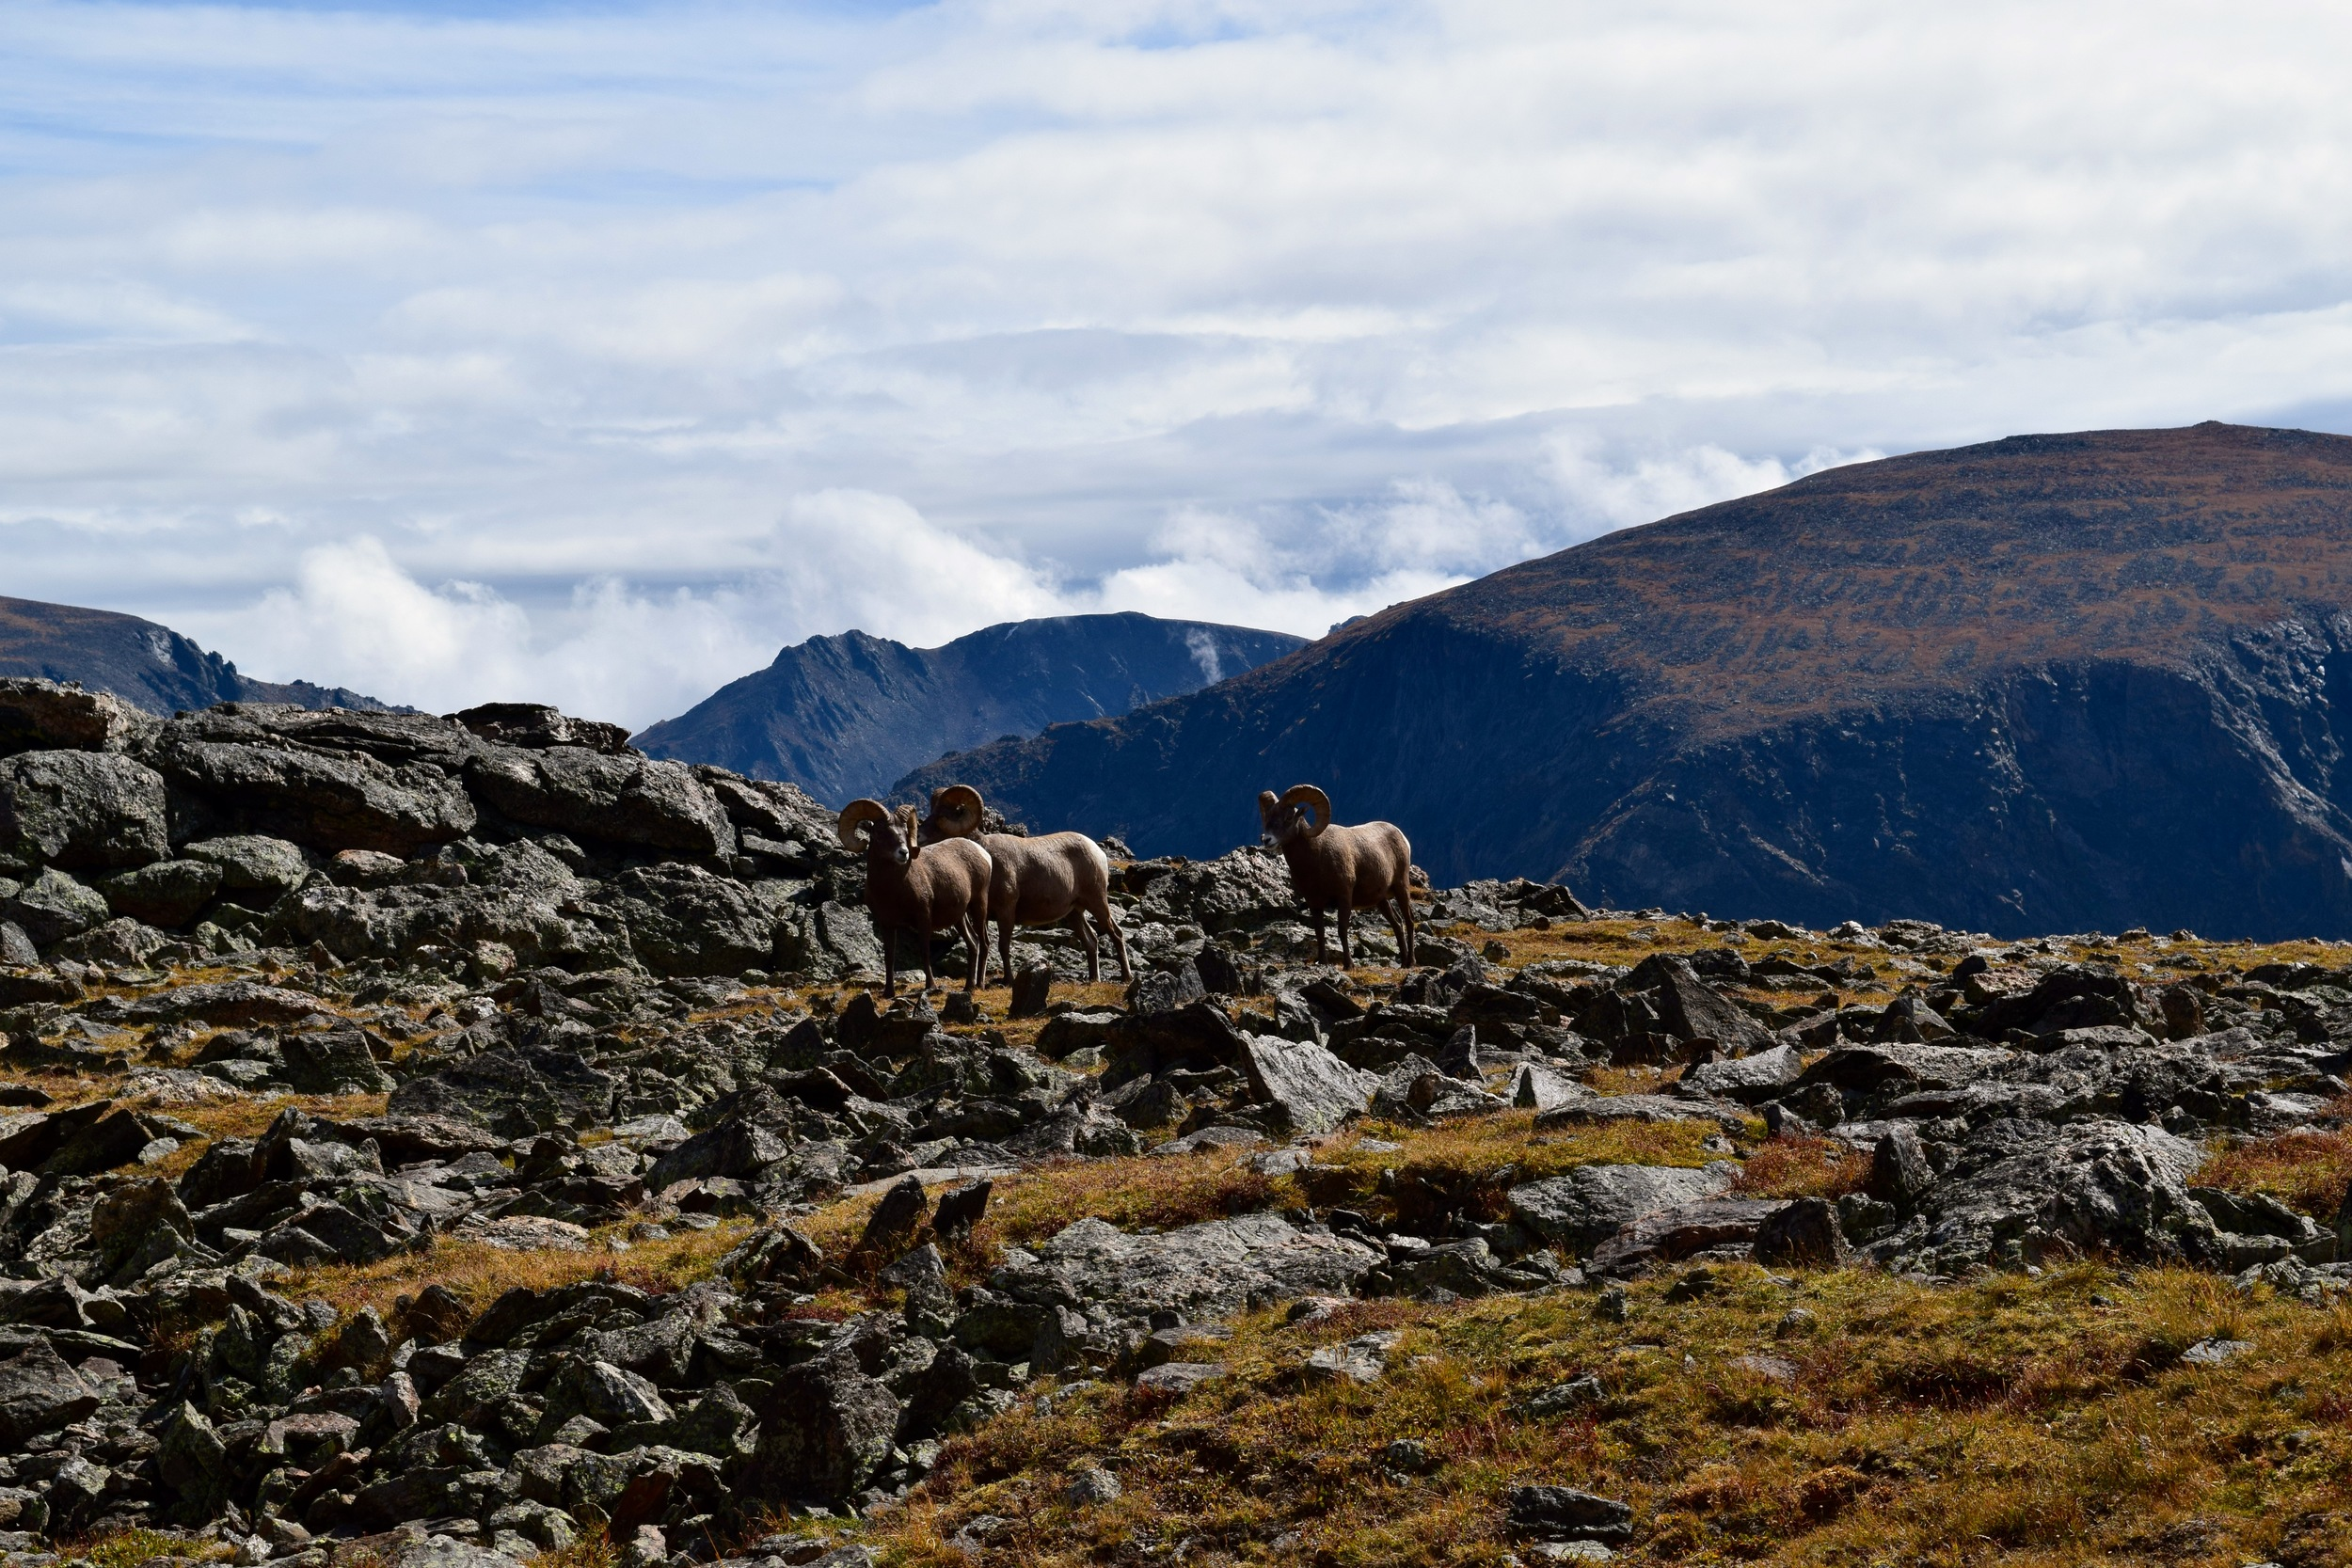 Big Horn Sheep, we were about 15-20 yards away from them, even though my lens doesn't make it look that way